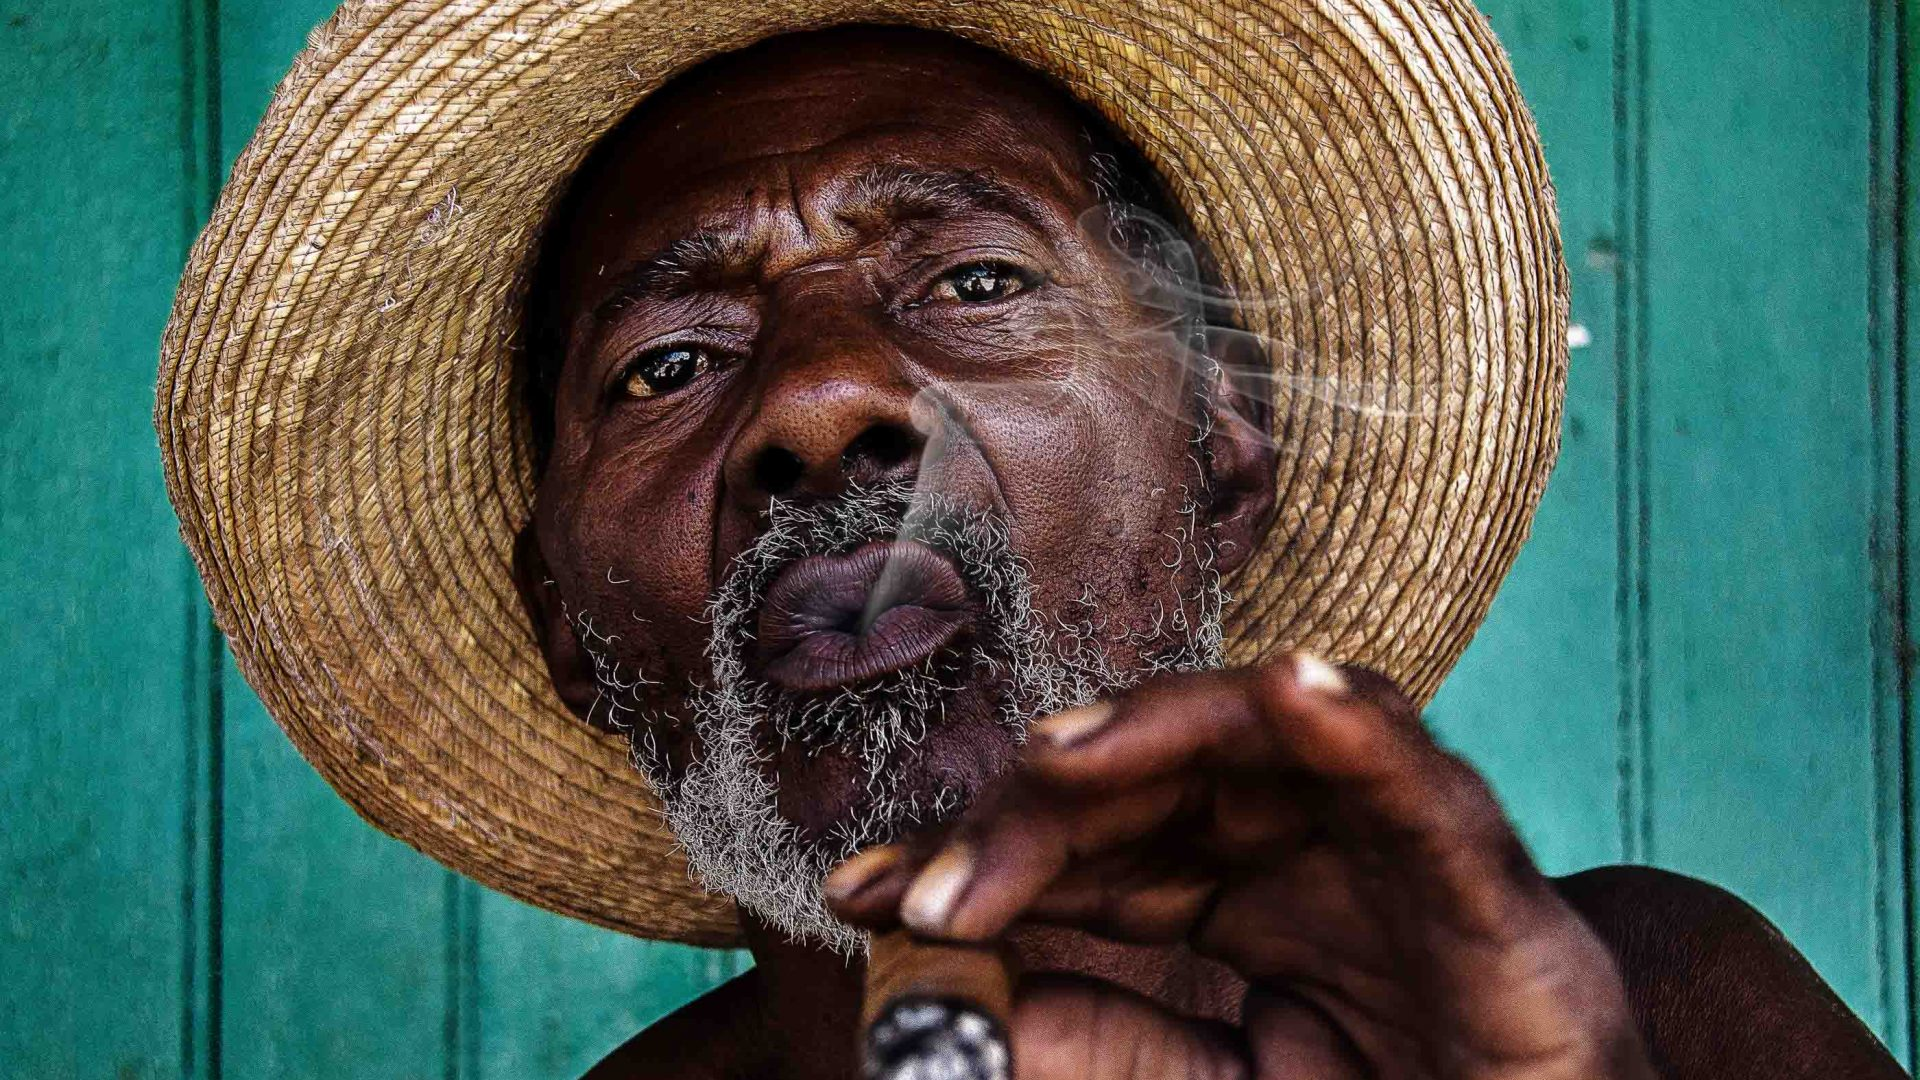 A man smokes a cigar in Cuba.